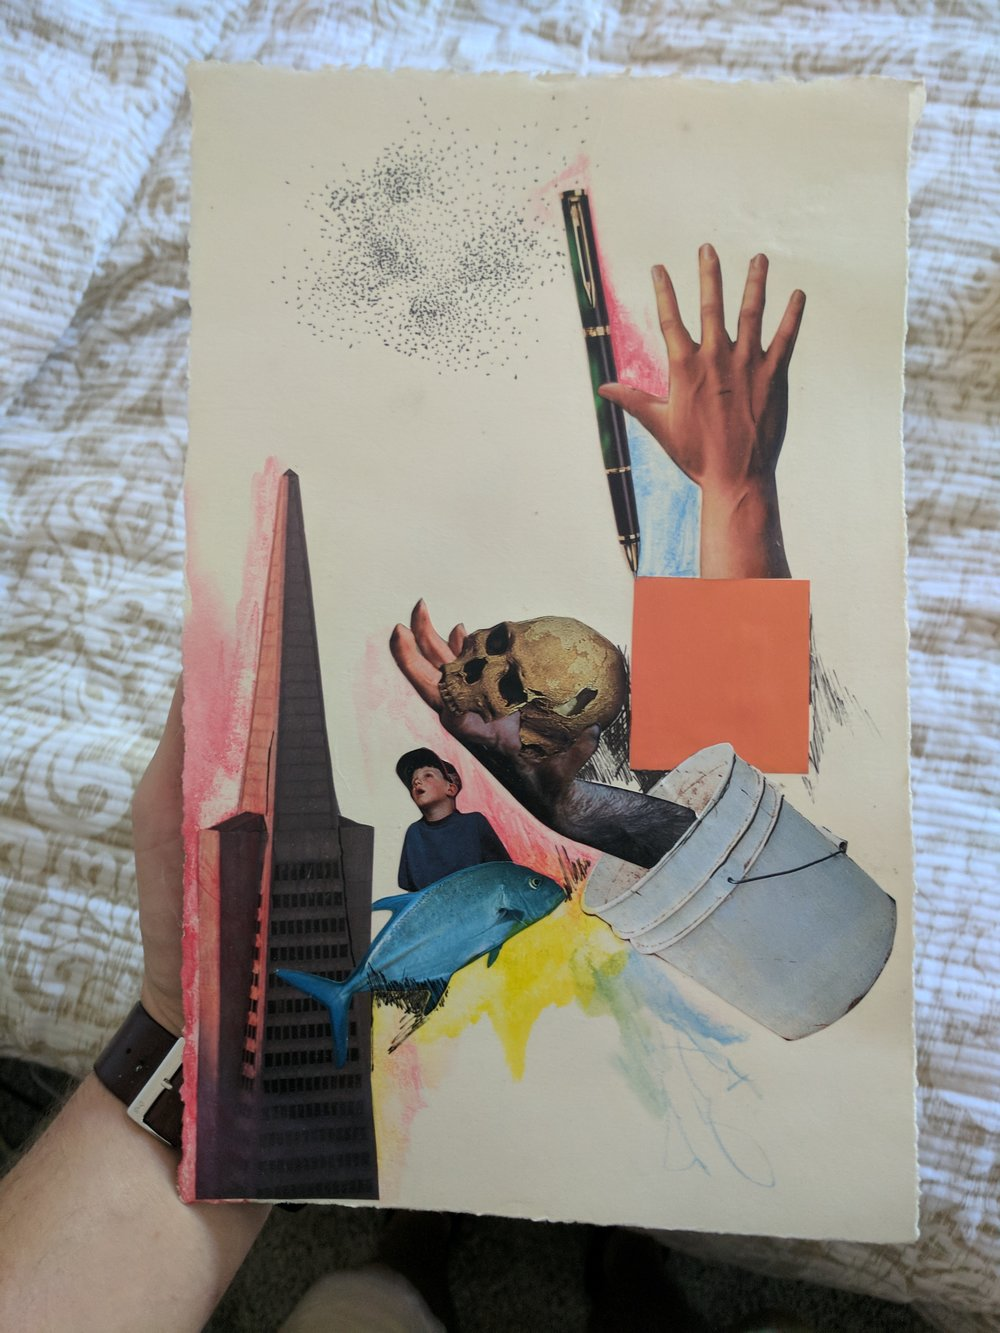 - The work from the collage that convinced me of the beauty in art blocks has led me in so many different directions.